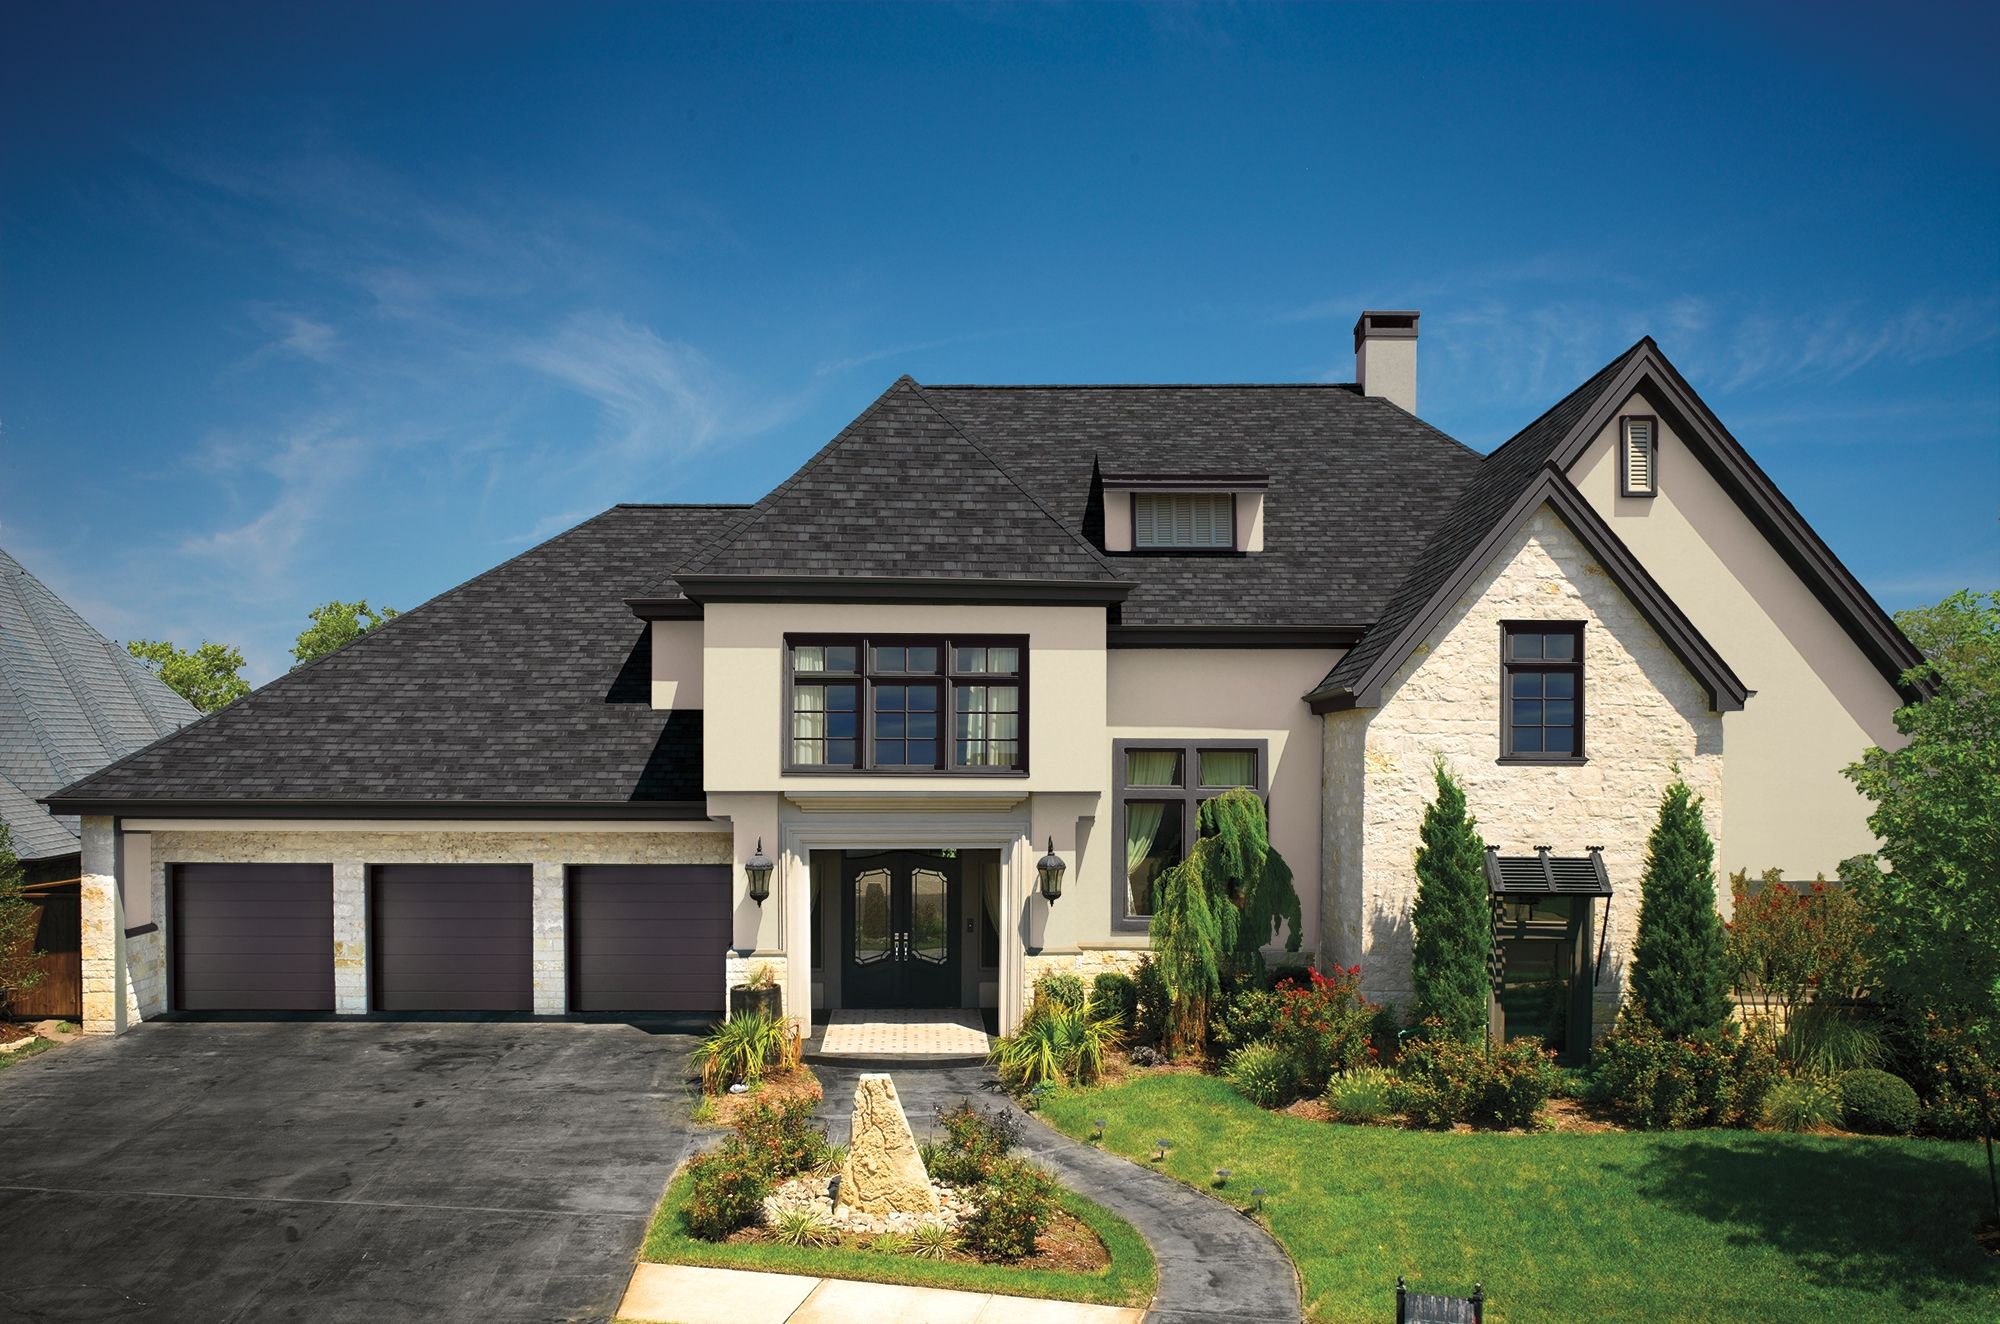 Http Www Gaf Com Roofing Residential Products Shingles Designer Camelot Ii Photos Beautiful Roofs Residential Roofing Roof Design